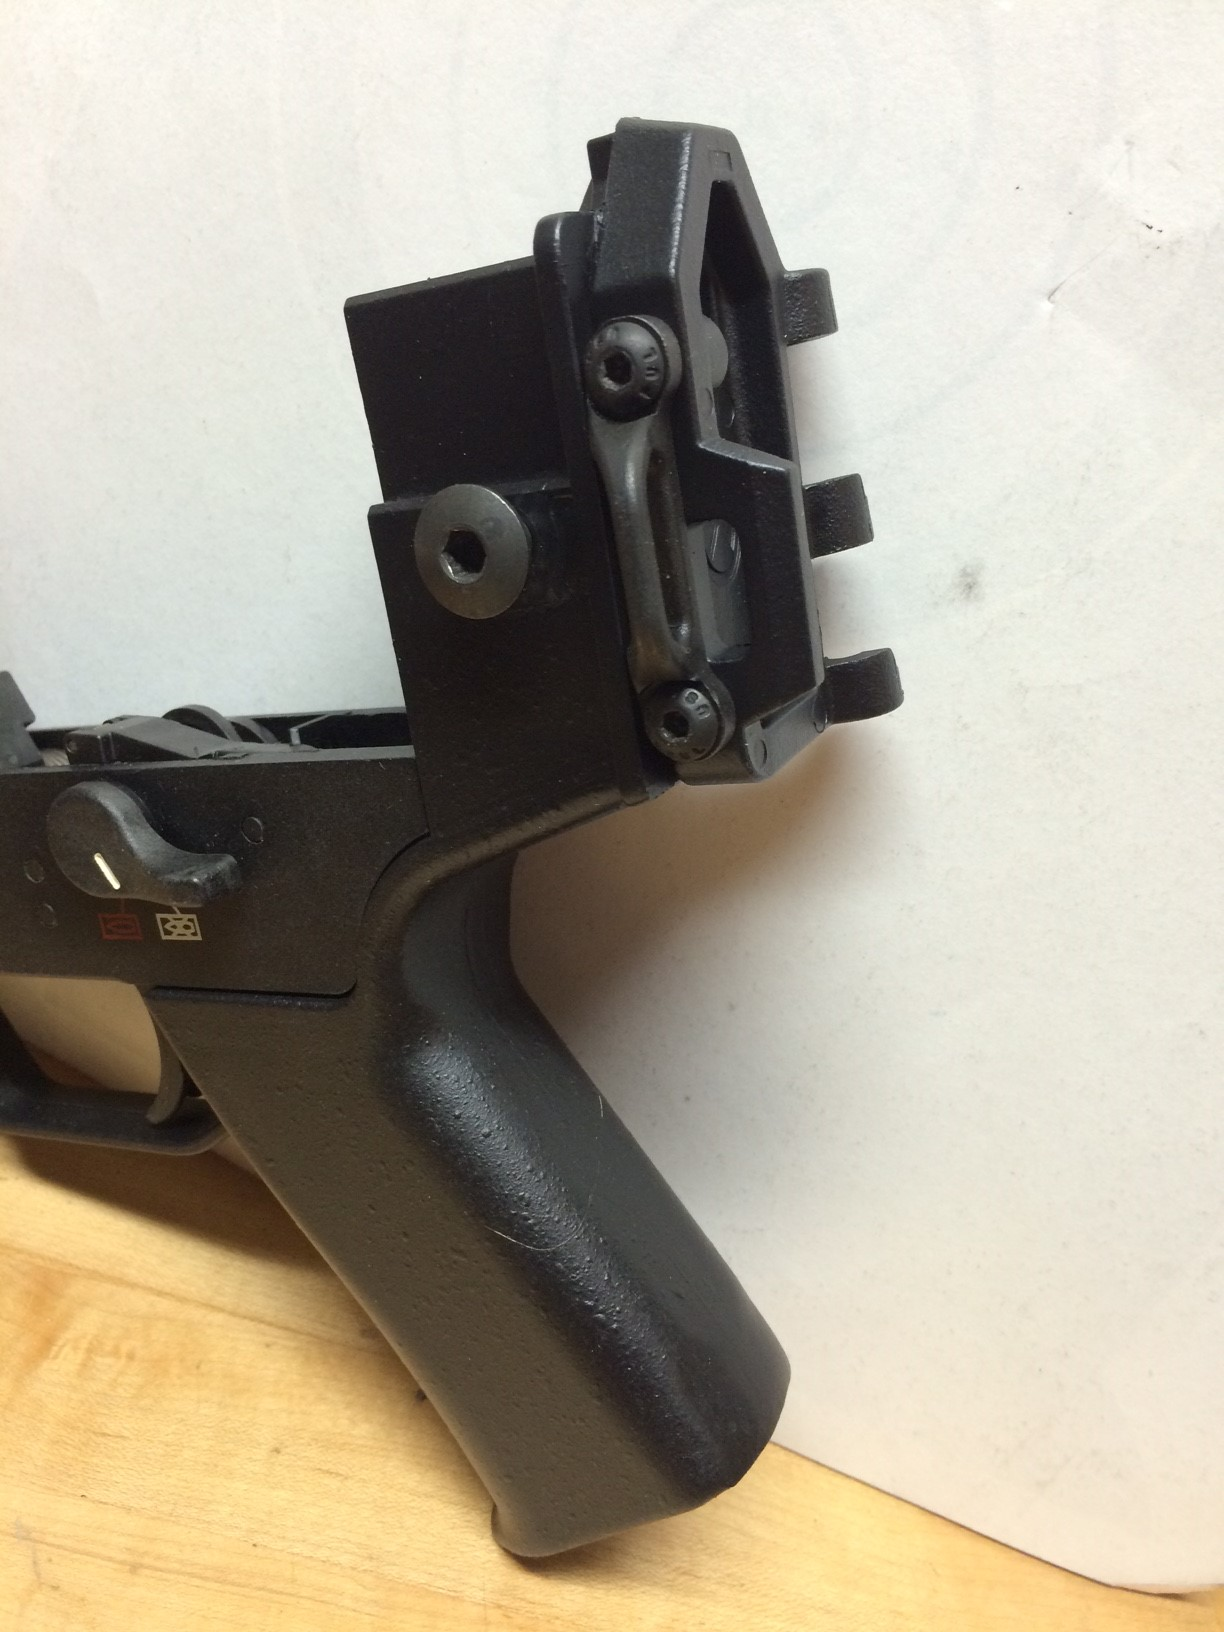 Ump Stock Adapter Direct To Acr Stock Instead Of Hk Stock Page 41